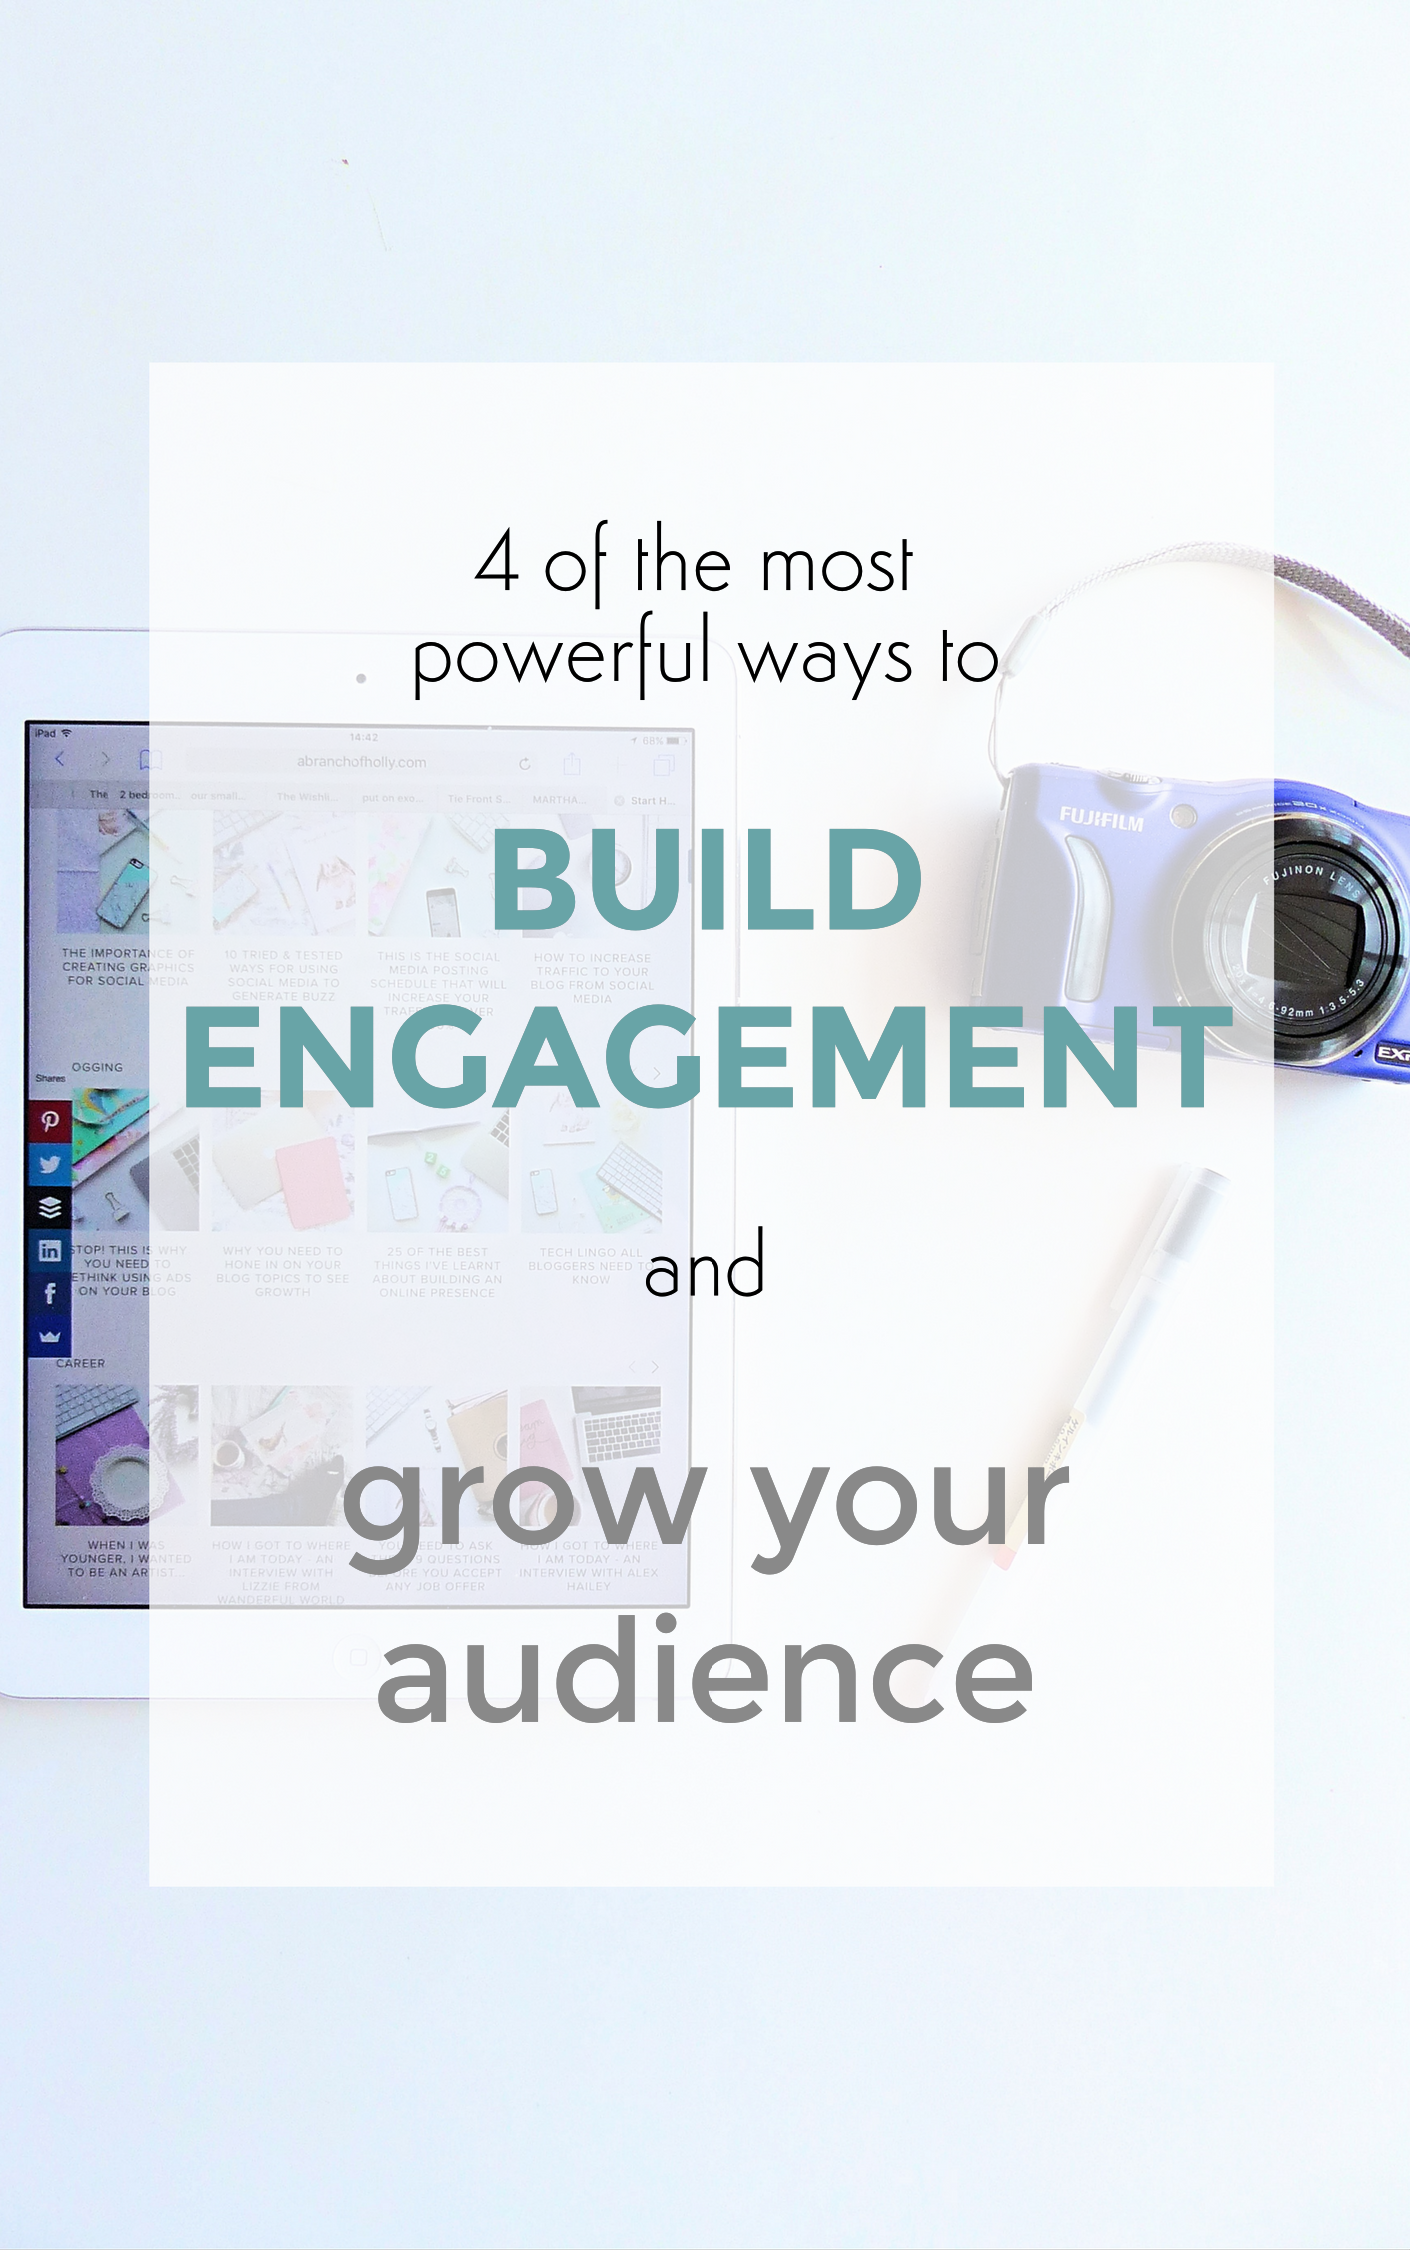 4 of the most powerful ways to build engagement and grow your audience